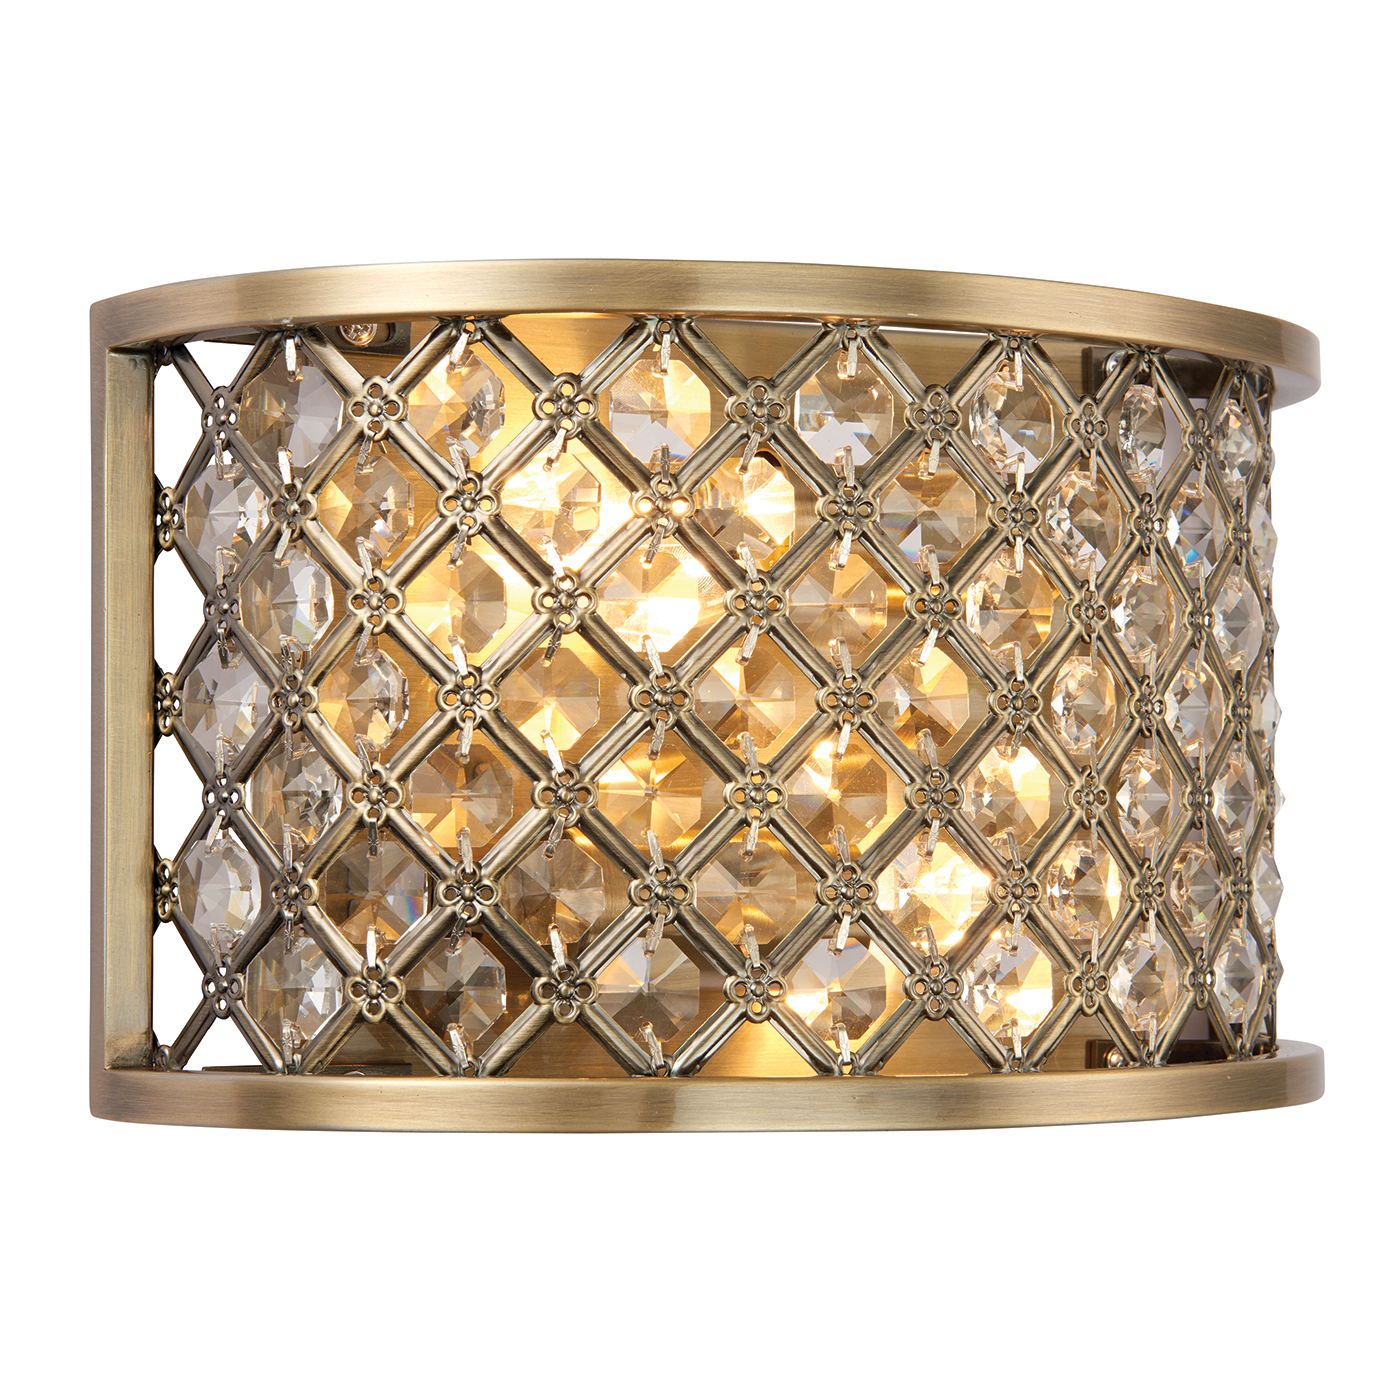 Endon Hudson 2lt wall light 60W Antique brass plate & clear crystal (k9) drops